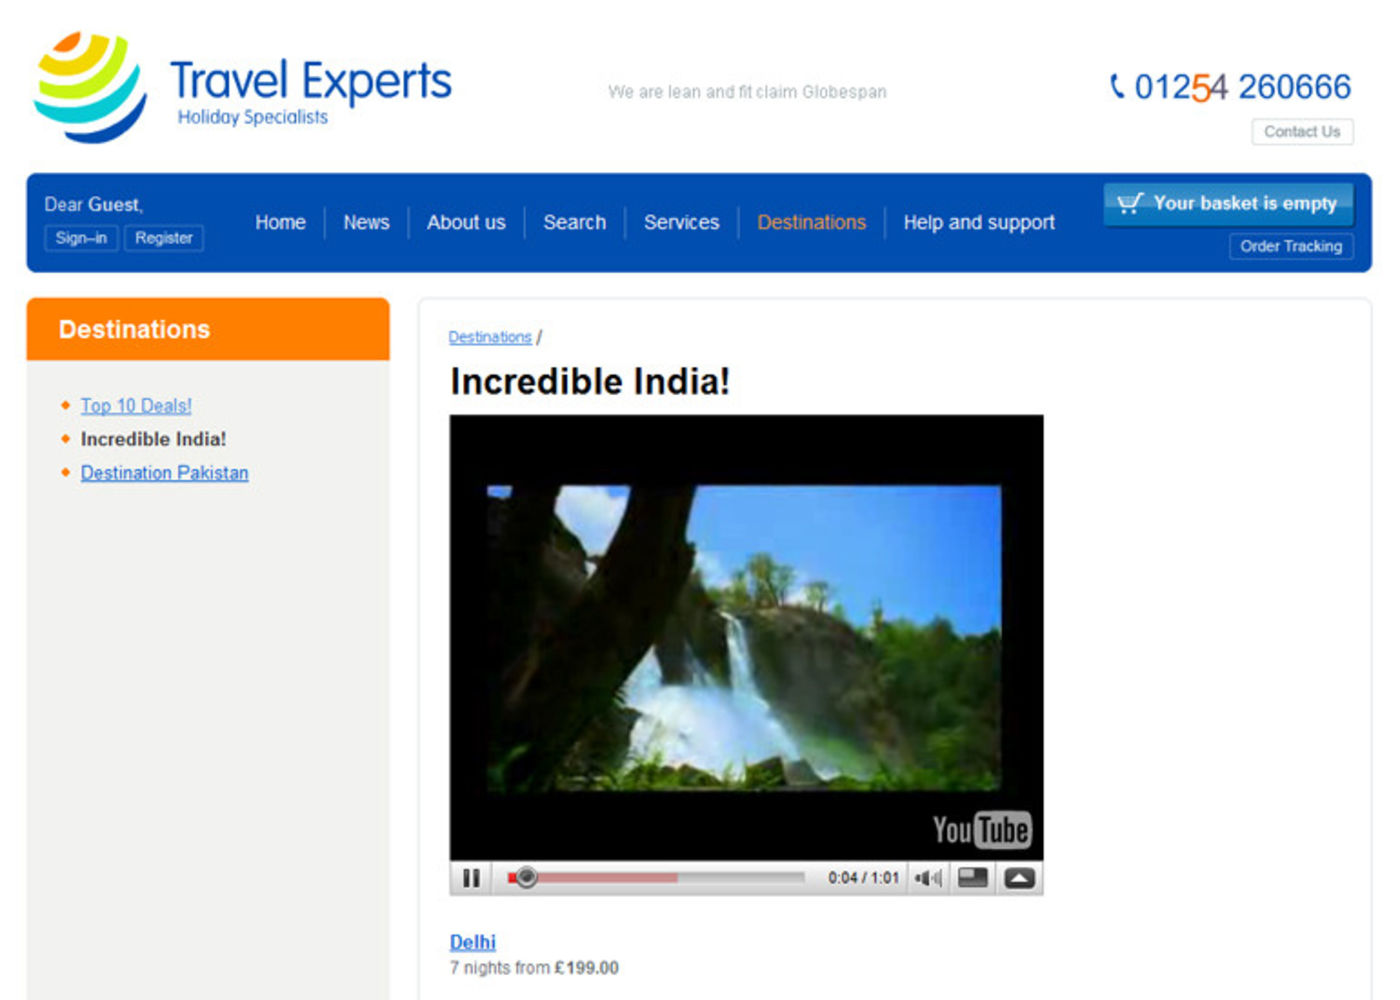 Travel Experts Video in page